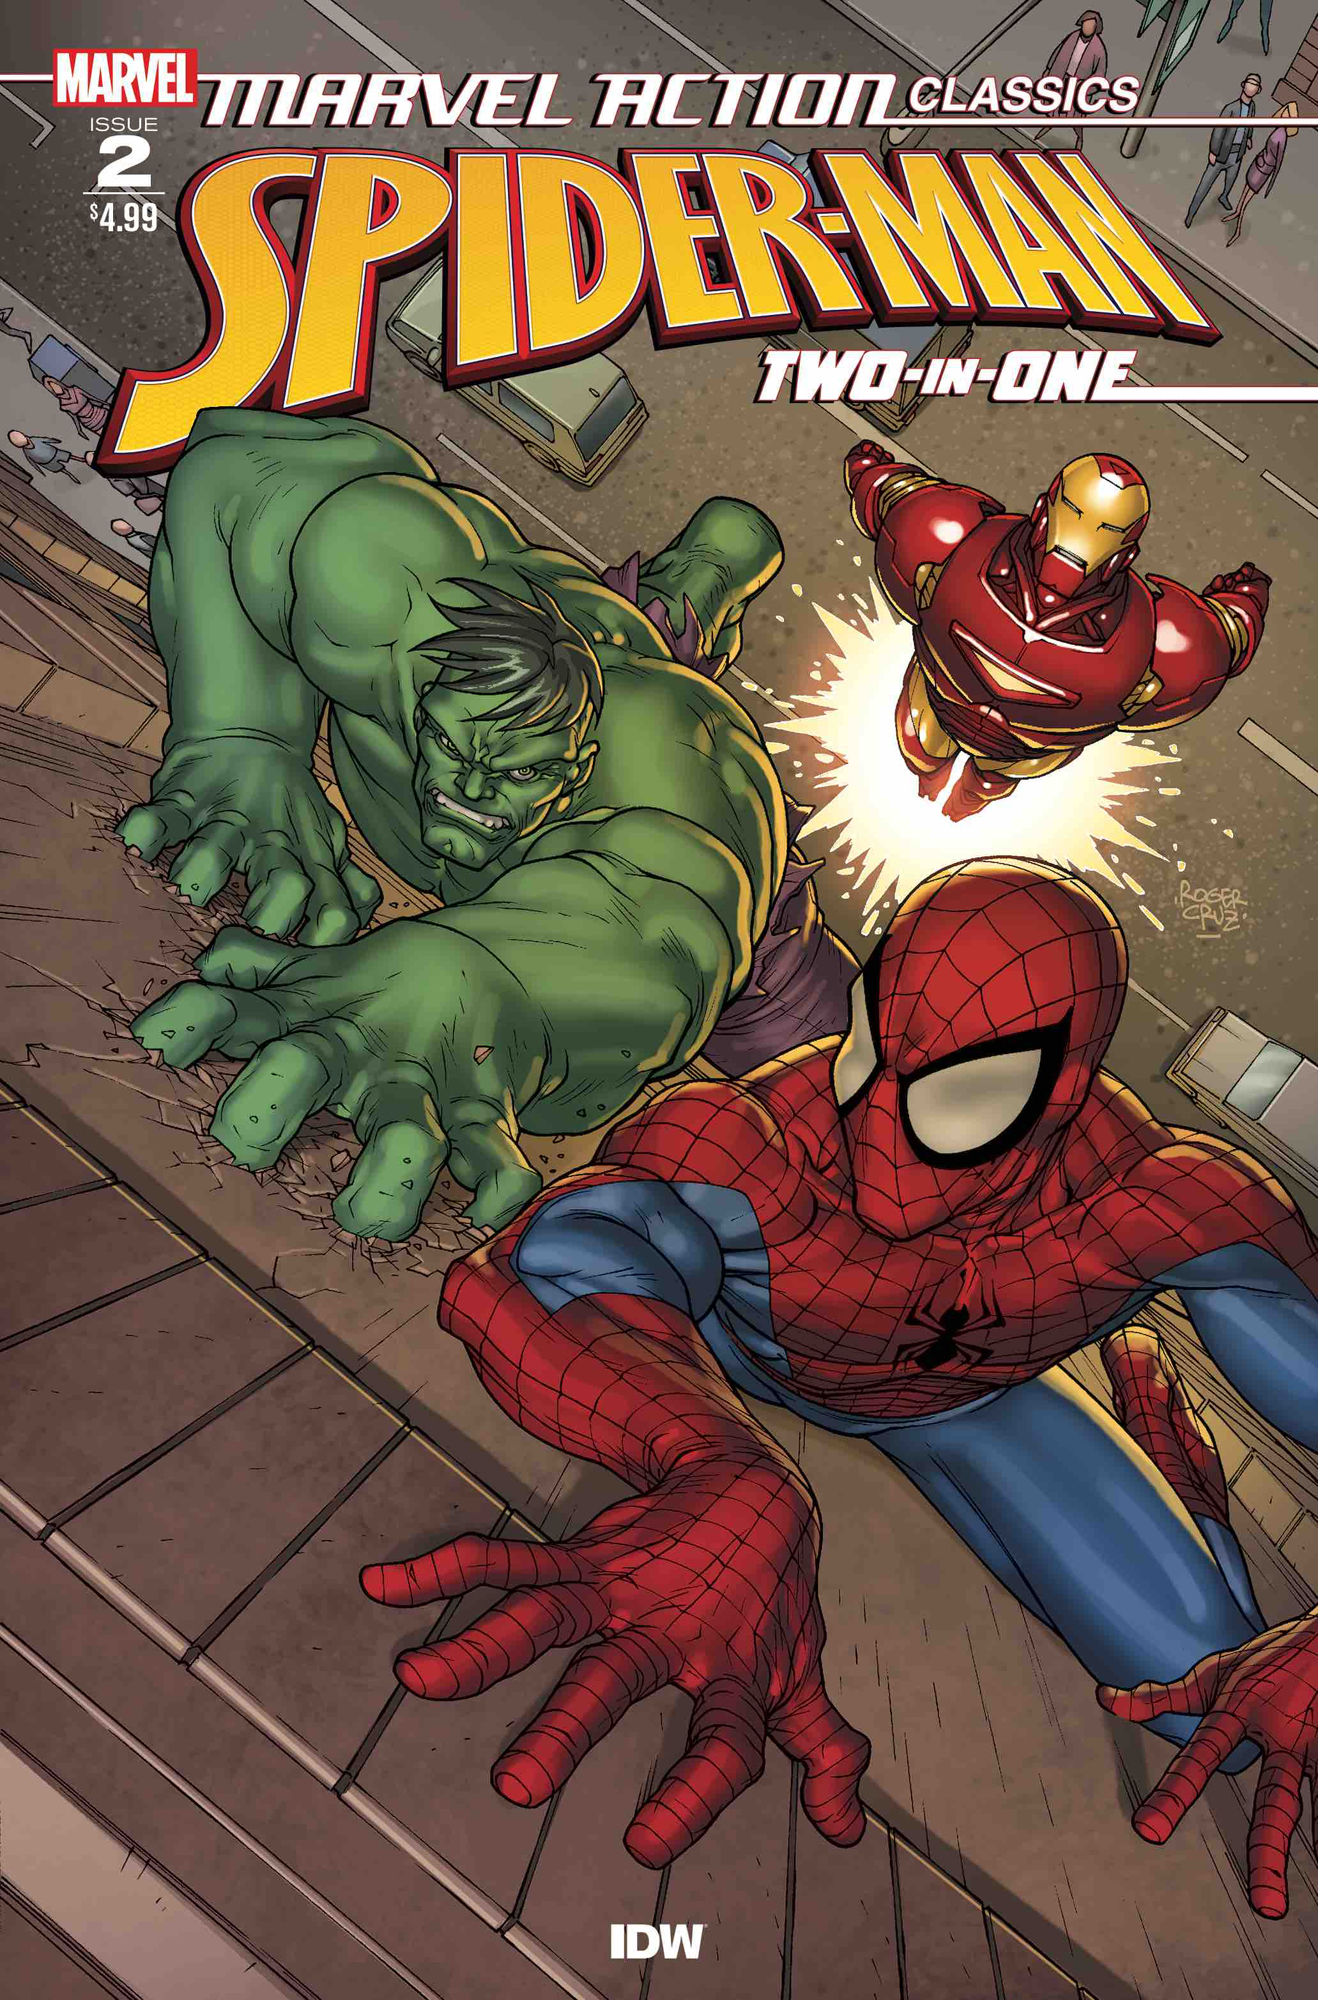 MARVEL ACTION CLASSICS SPIDER-MAN TWO IN ONE #1 SCHERBERGER